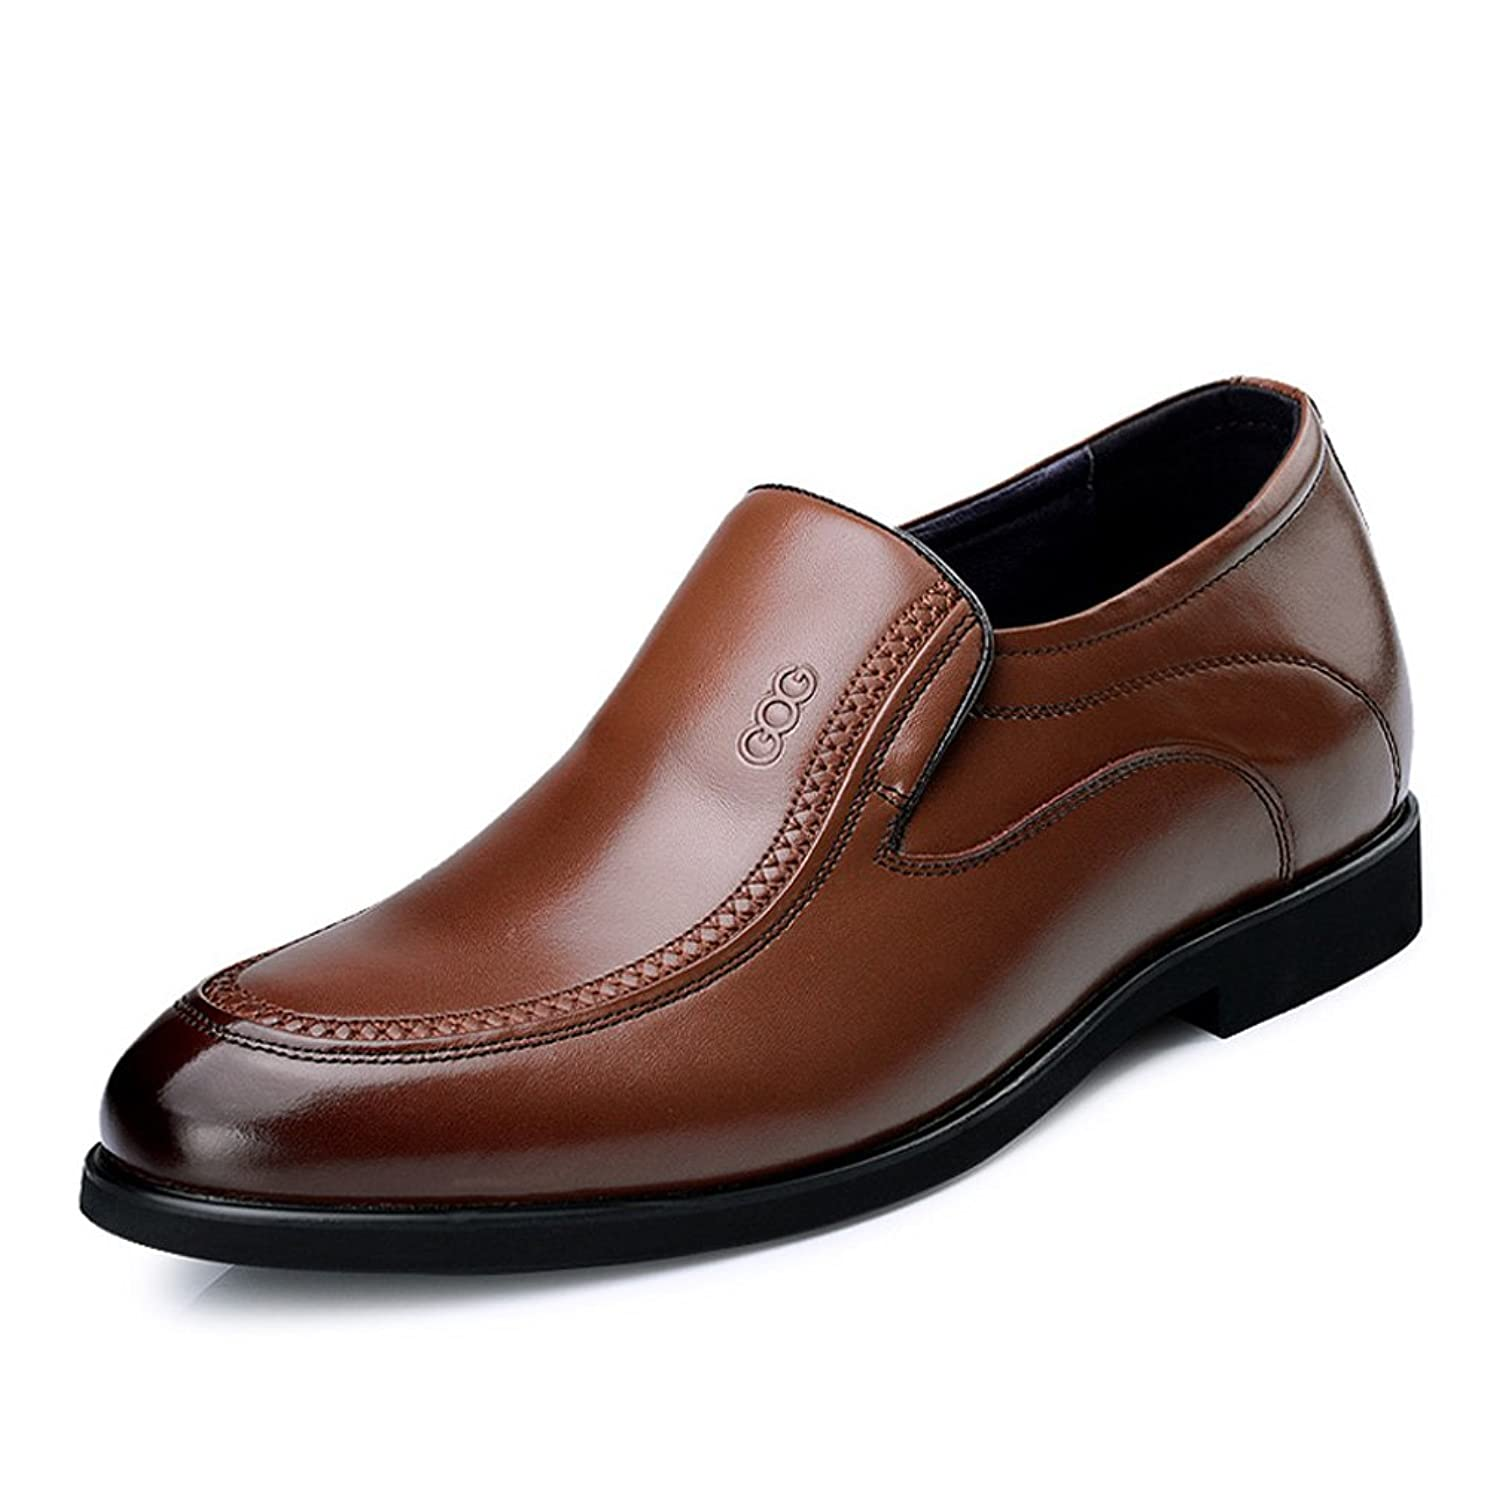 2.56 Inches Taller - Men's Height Increasing Elevator loafers-Brown Genuine Leather Dress Wedding Shoes